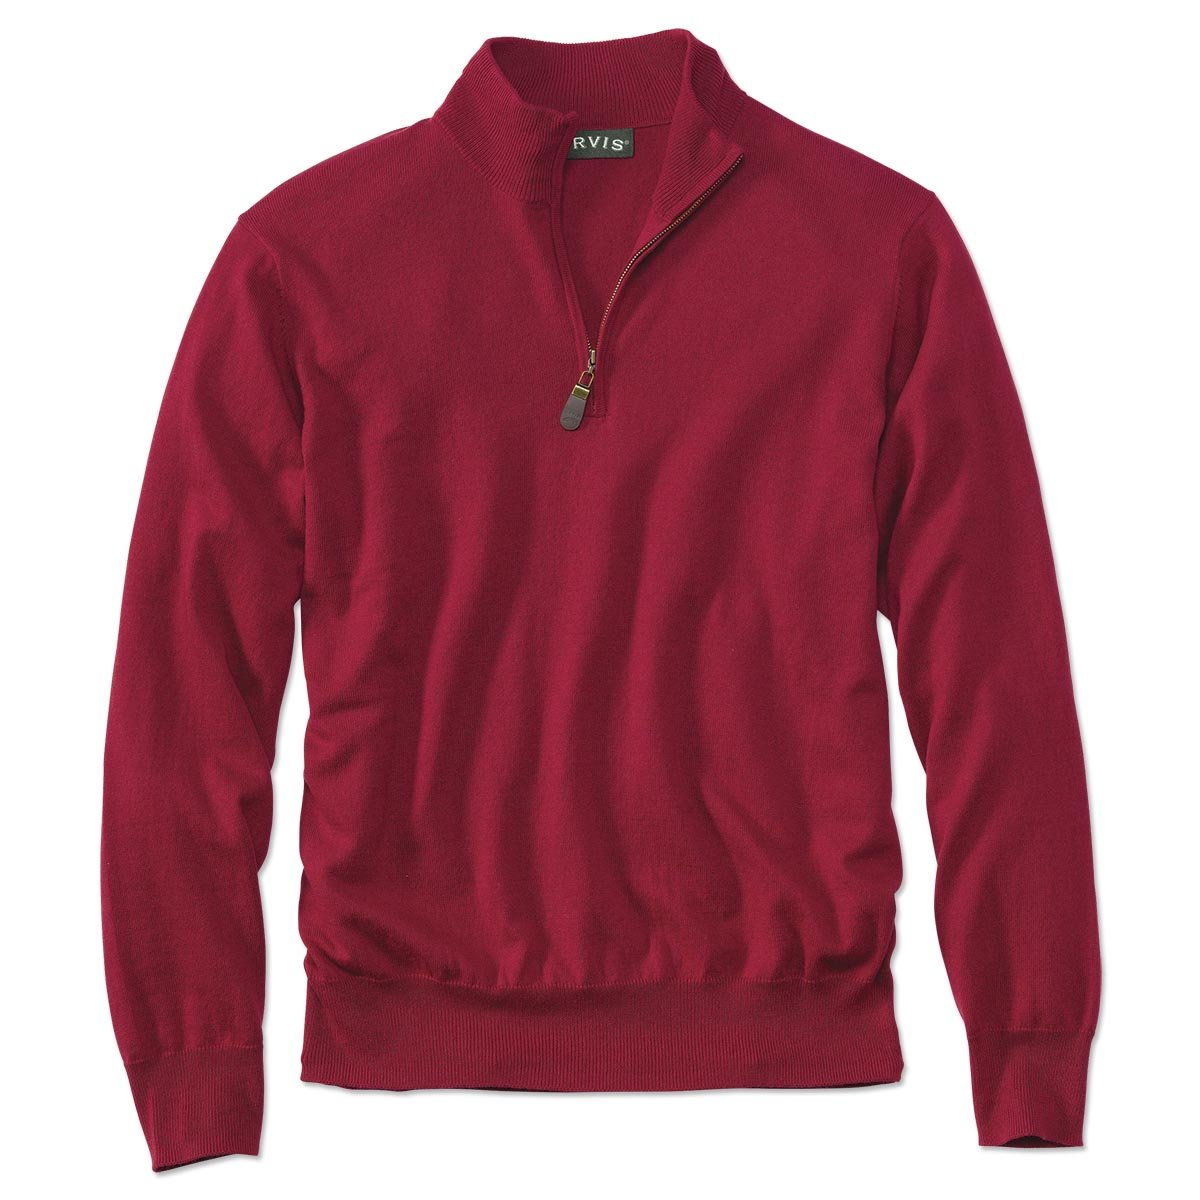 Orvis Cotton/Silk/Cashmere Zipneck Sweater, Red, Large